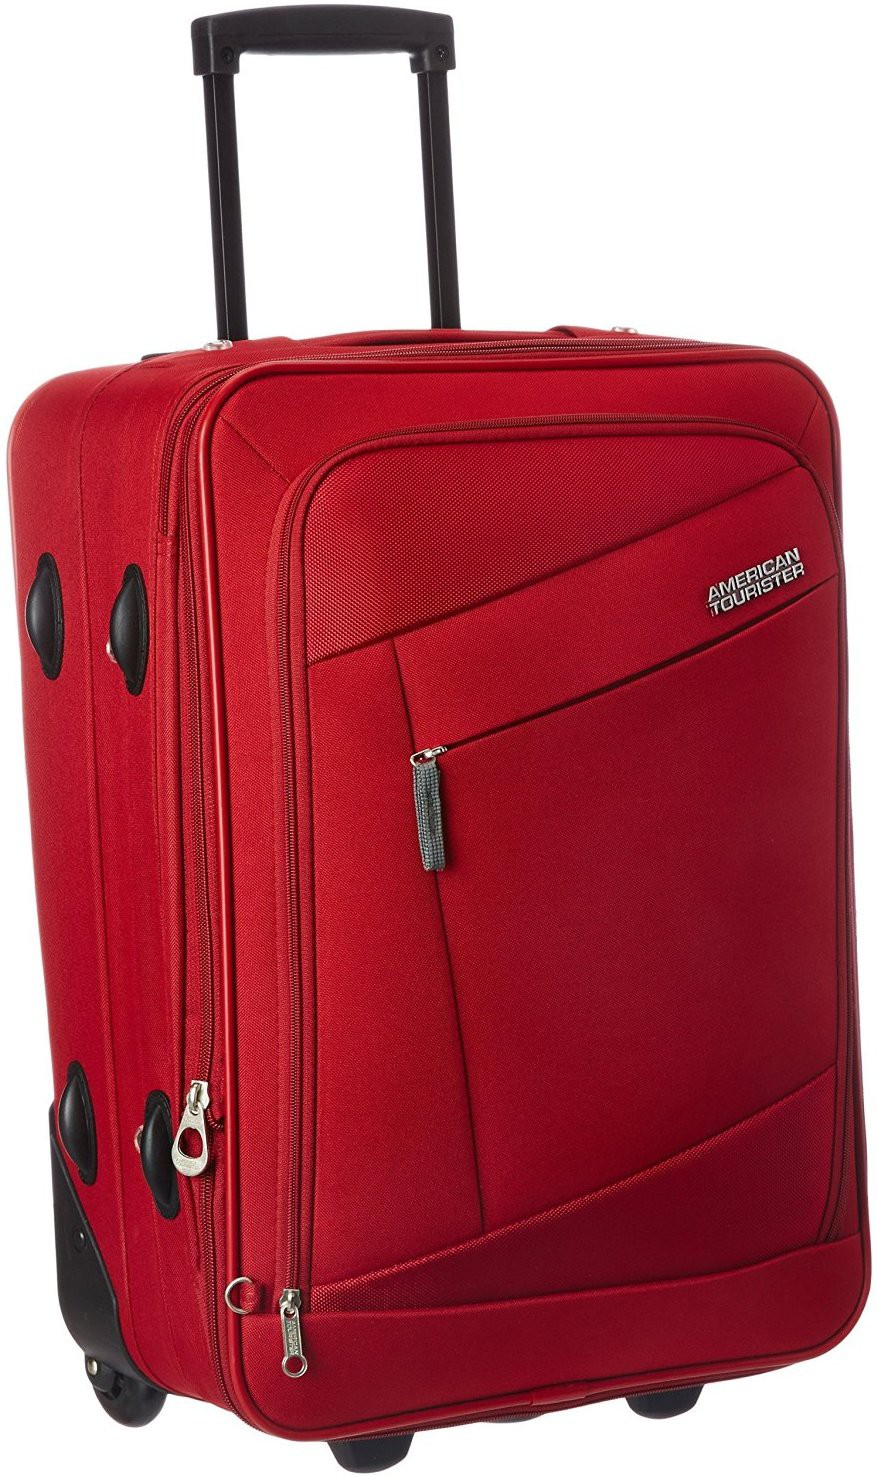 Deals | AT, Safari & more Suitcases